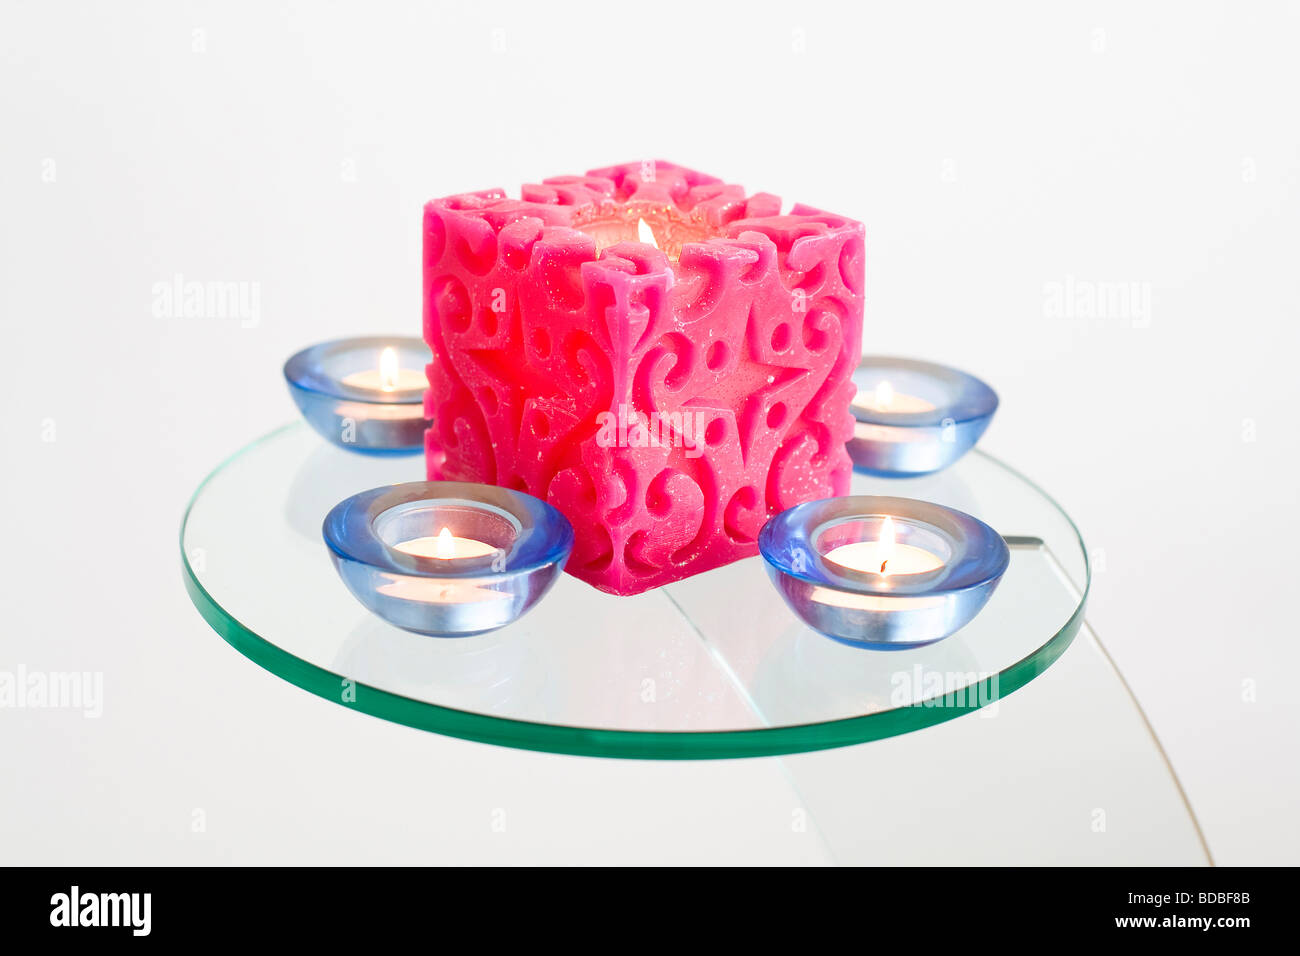 Diwali Candles on Glass Table - Stock Image